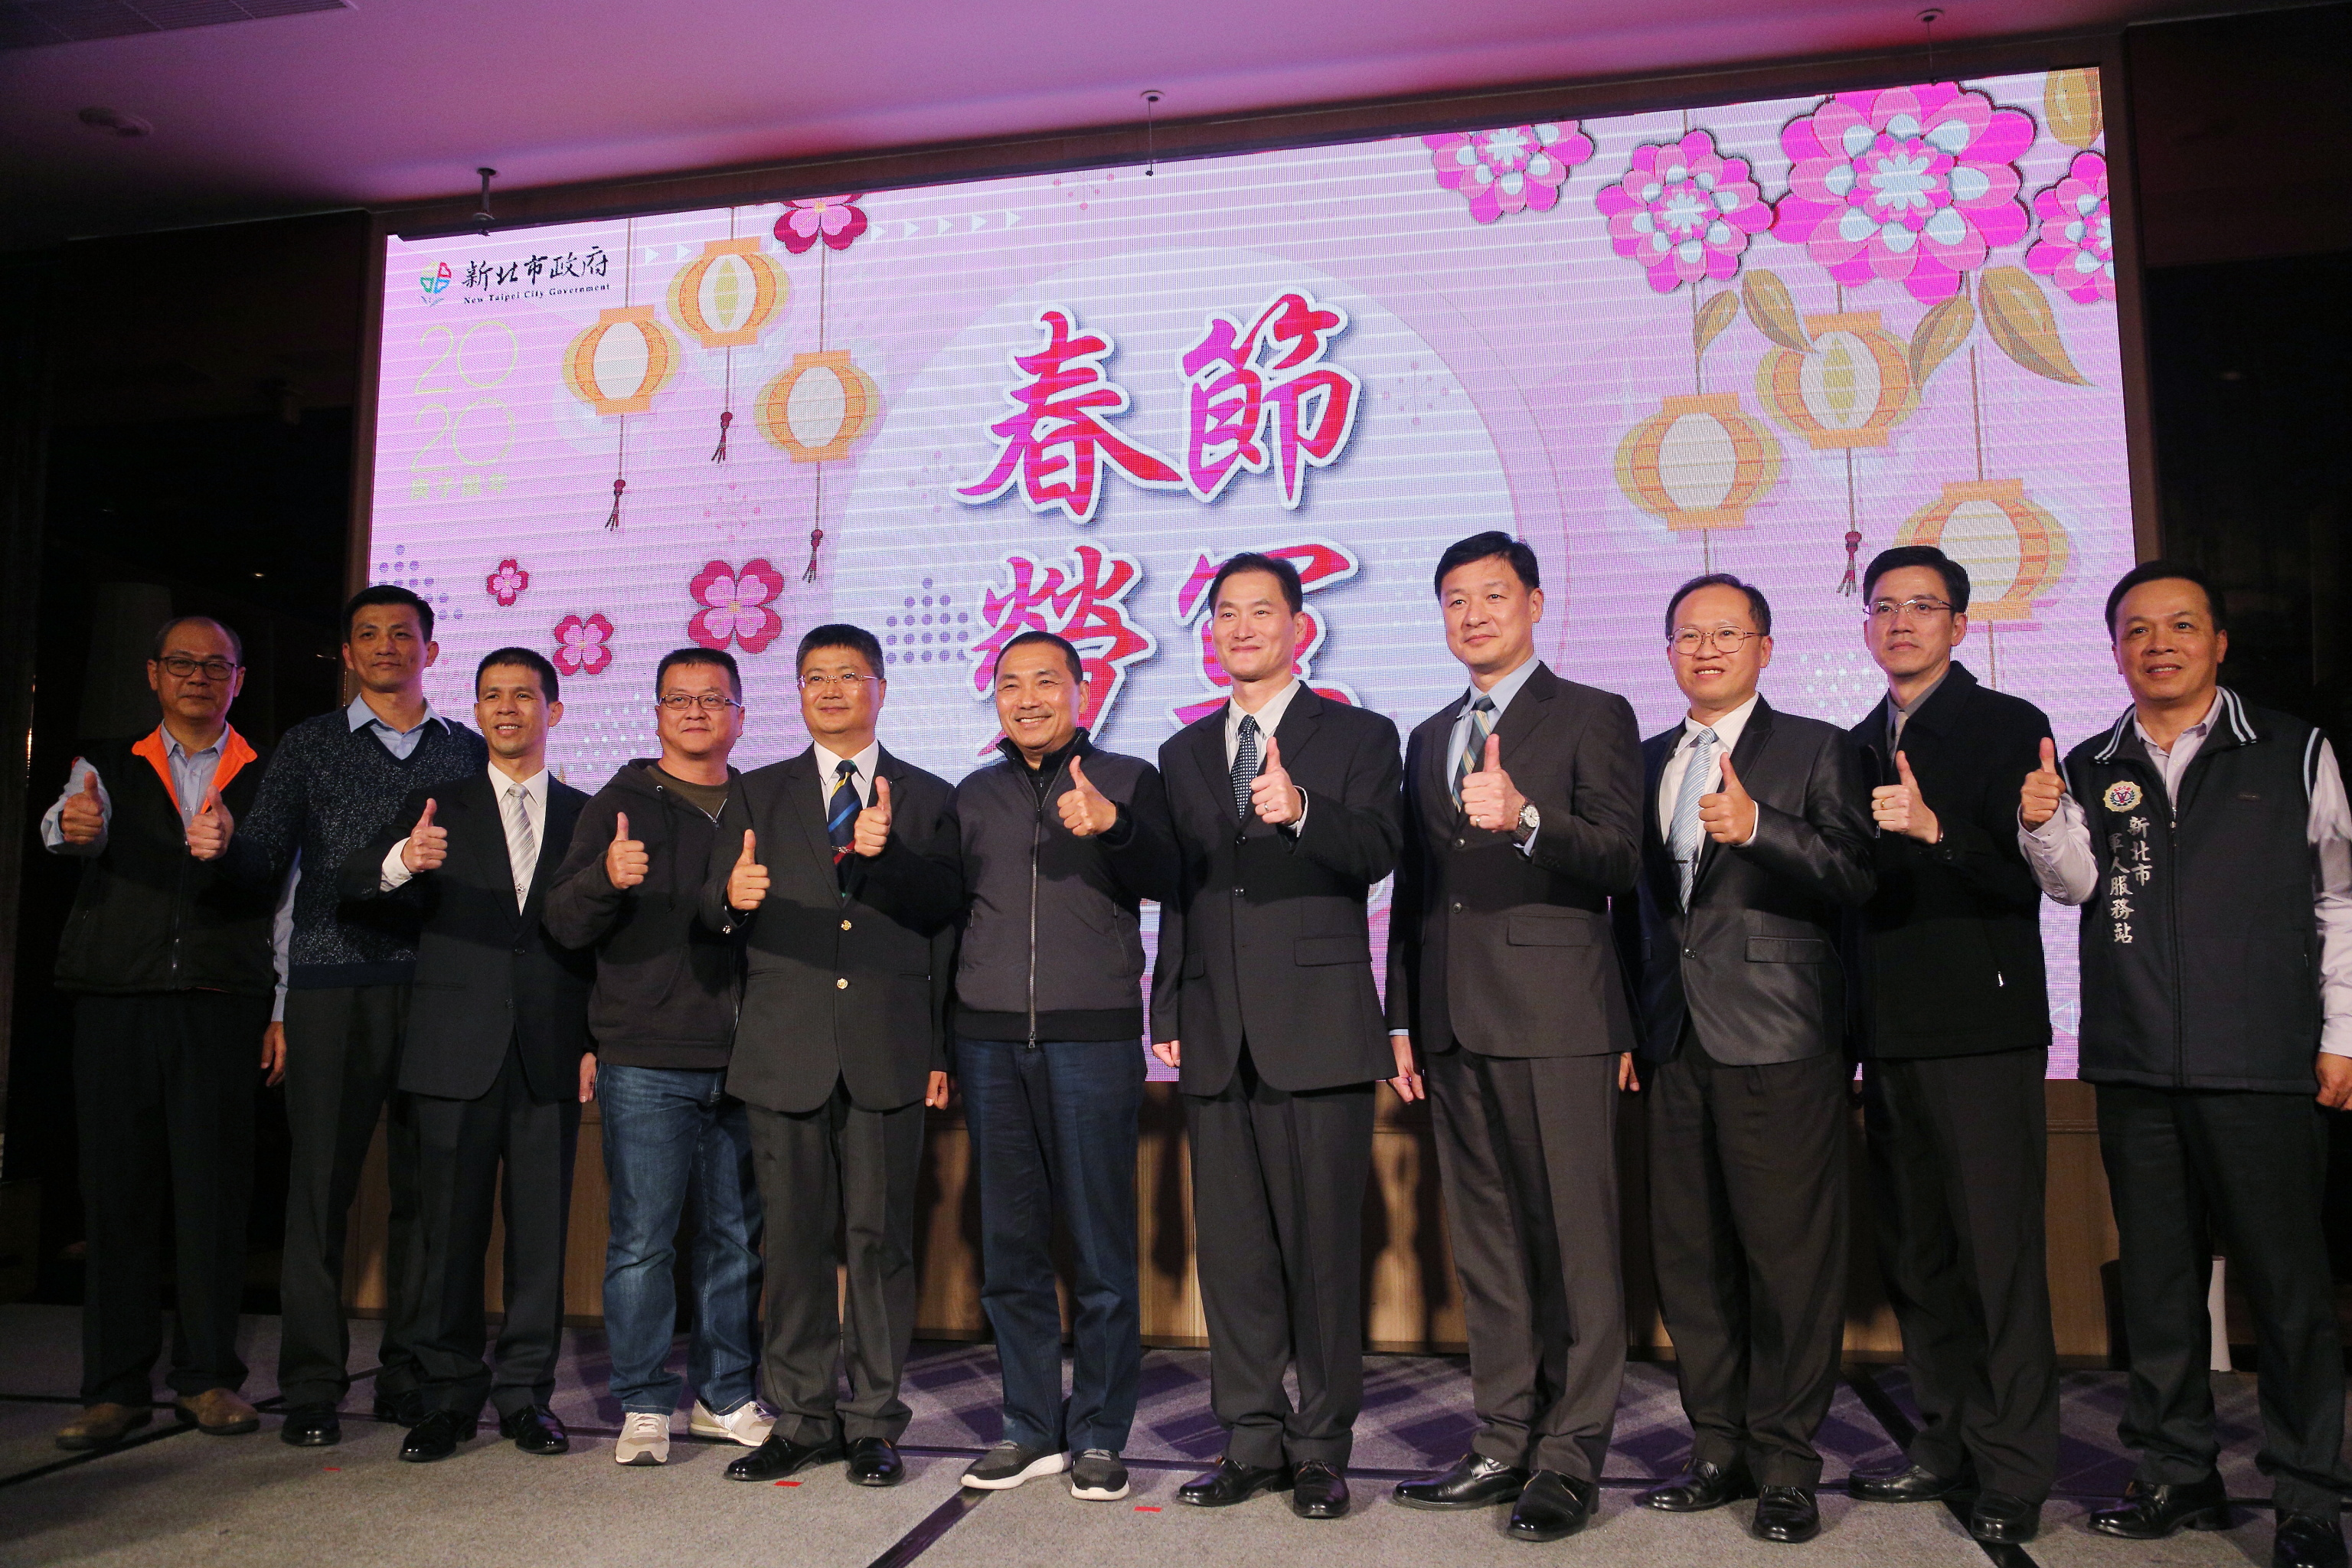 http://tw-taiwannews.com/site/44110